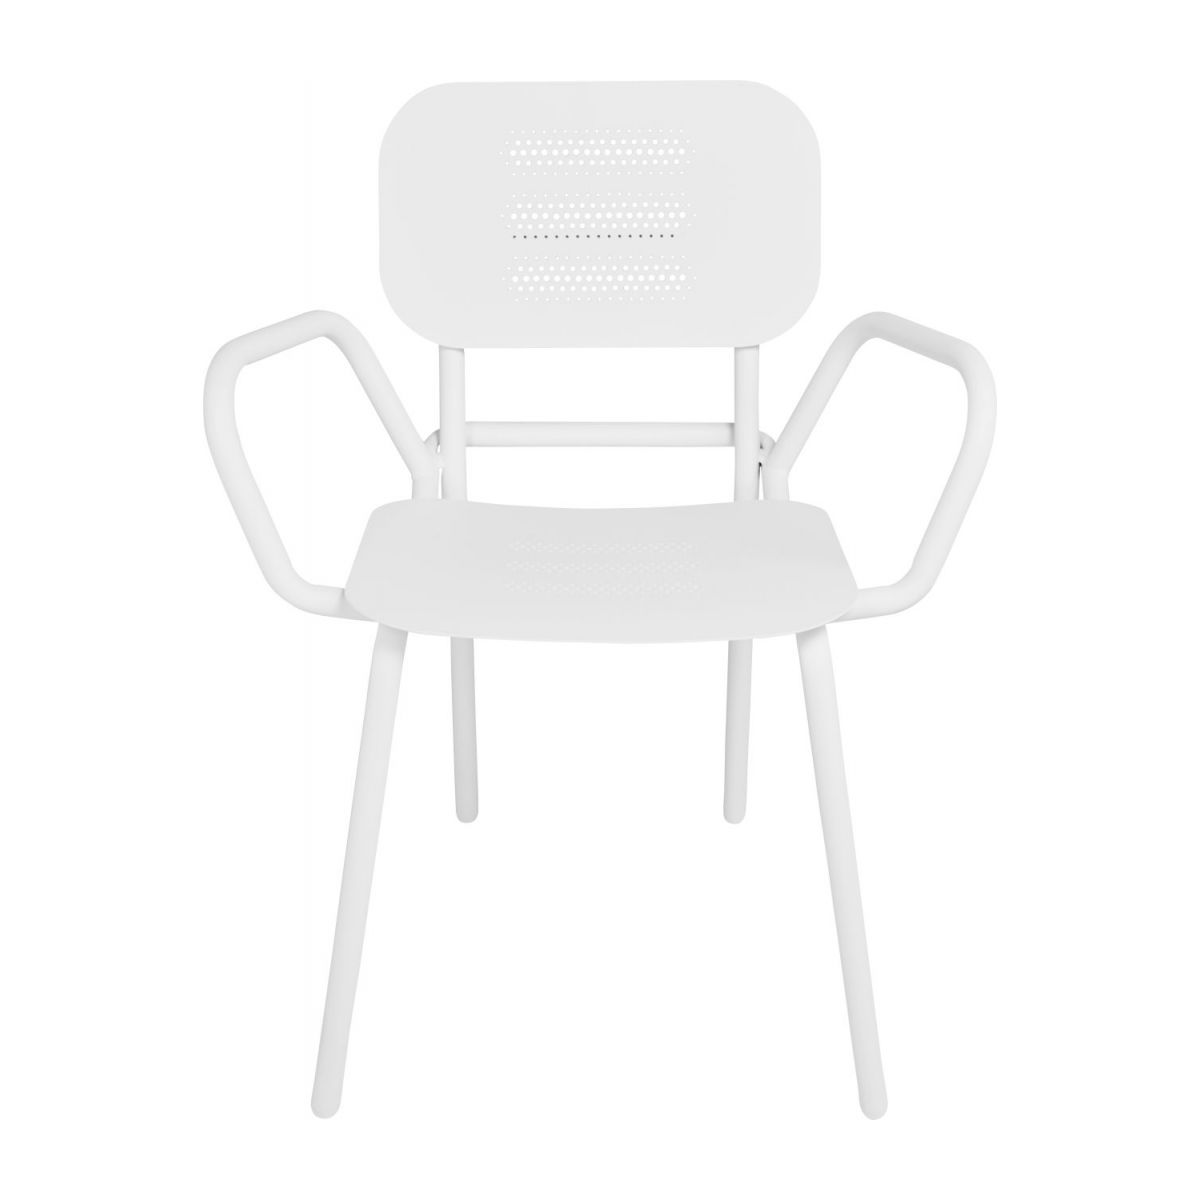 Garden chair with armrests n°3